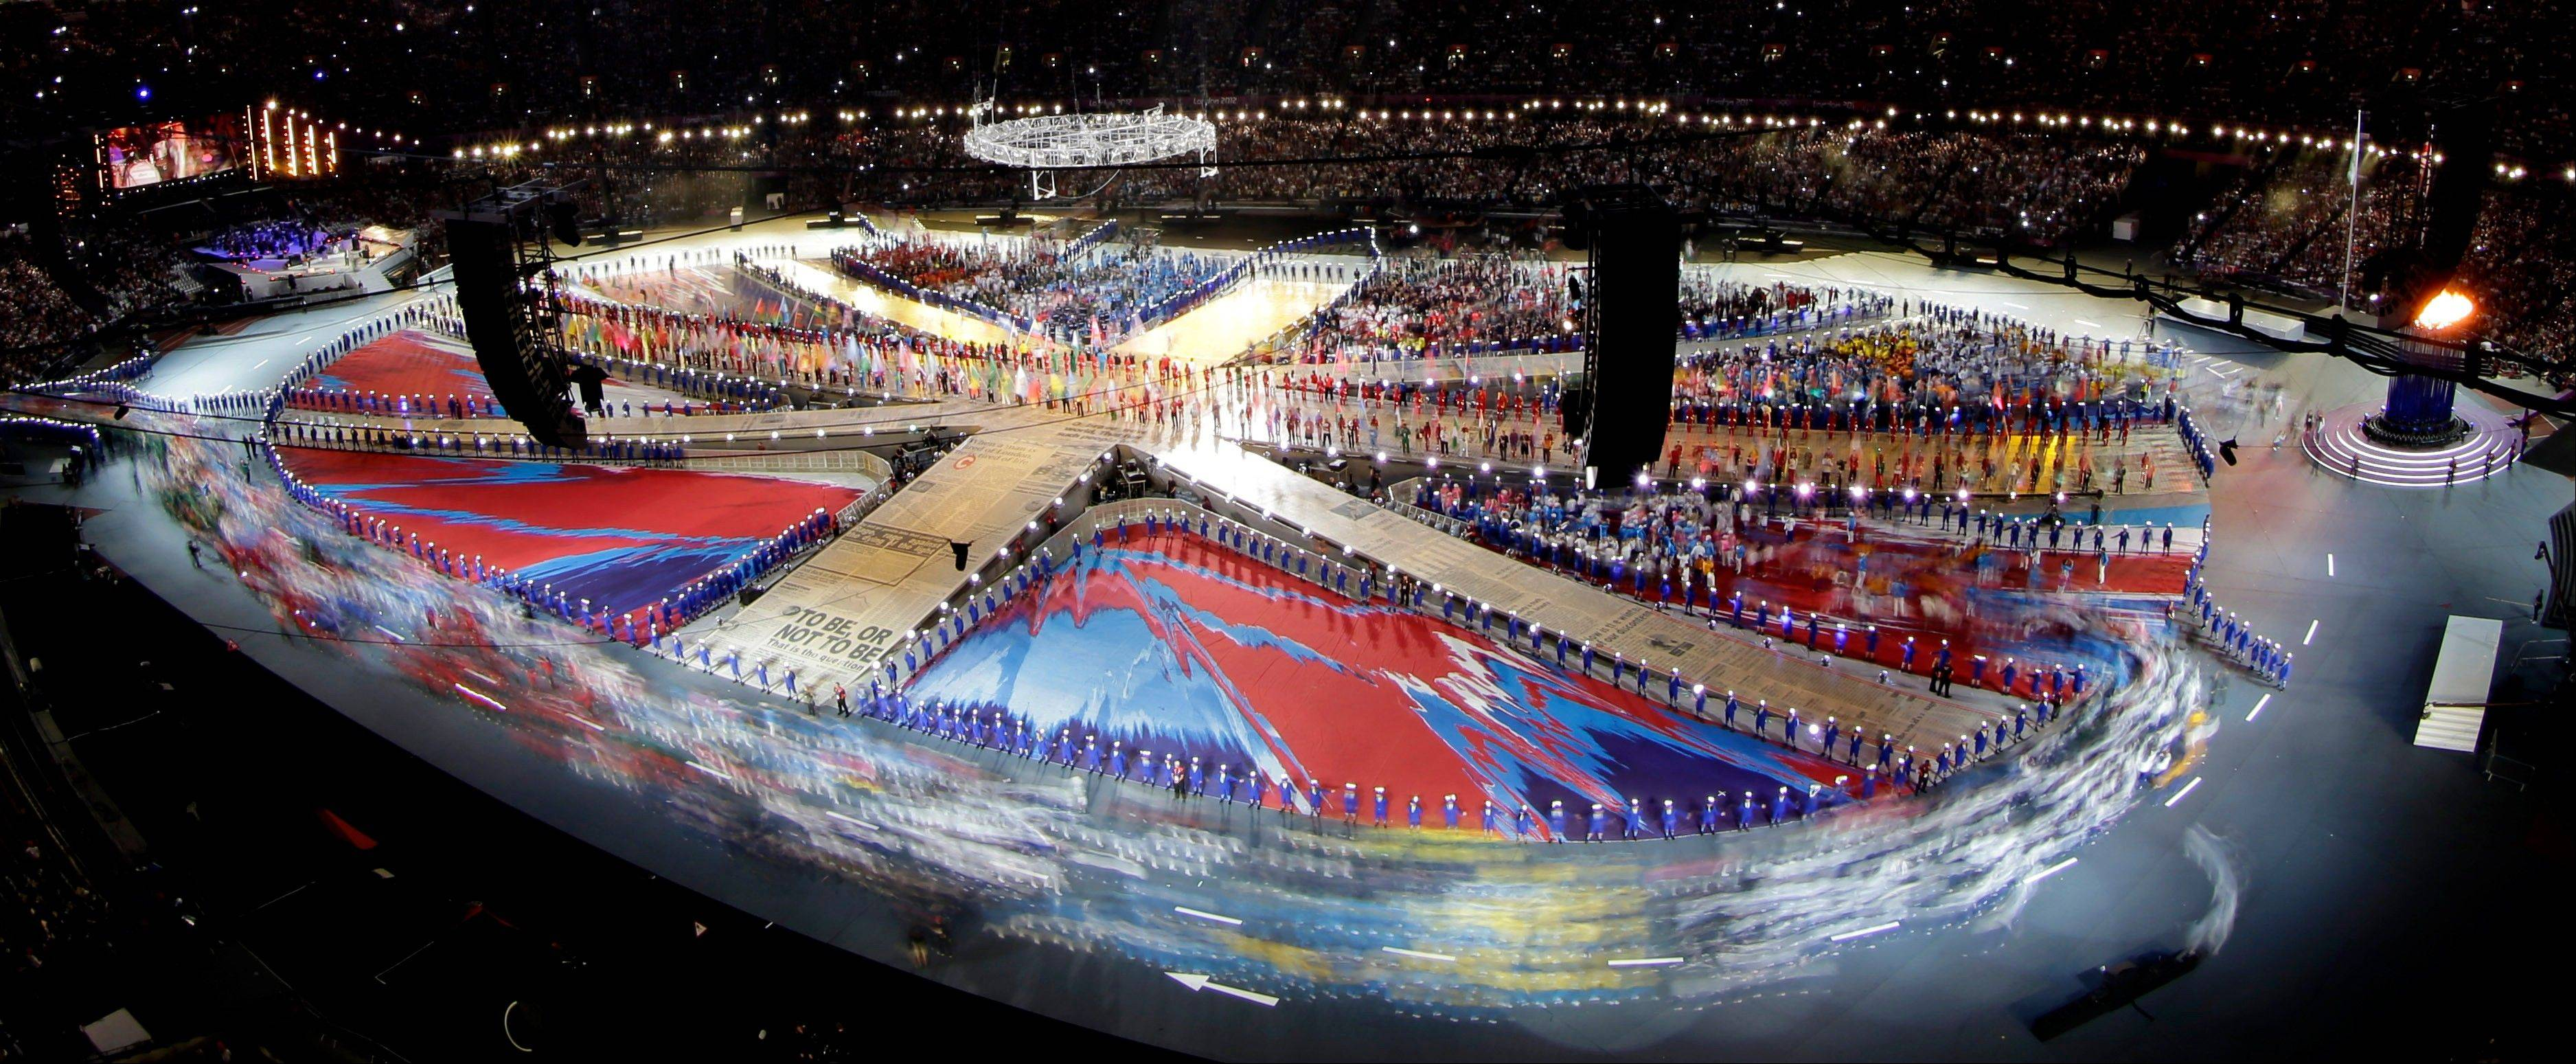 Athletes enter the Olympic Stadium during the Closing Ceremony at the 2012 Summer Olympics.